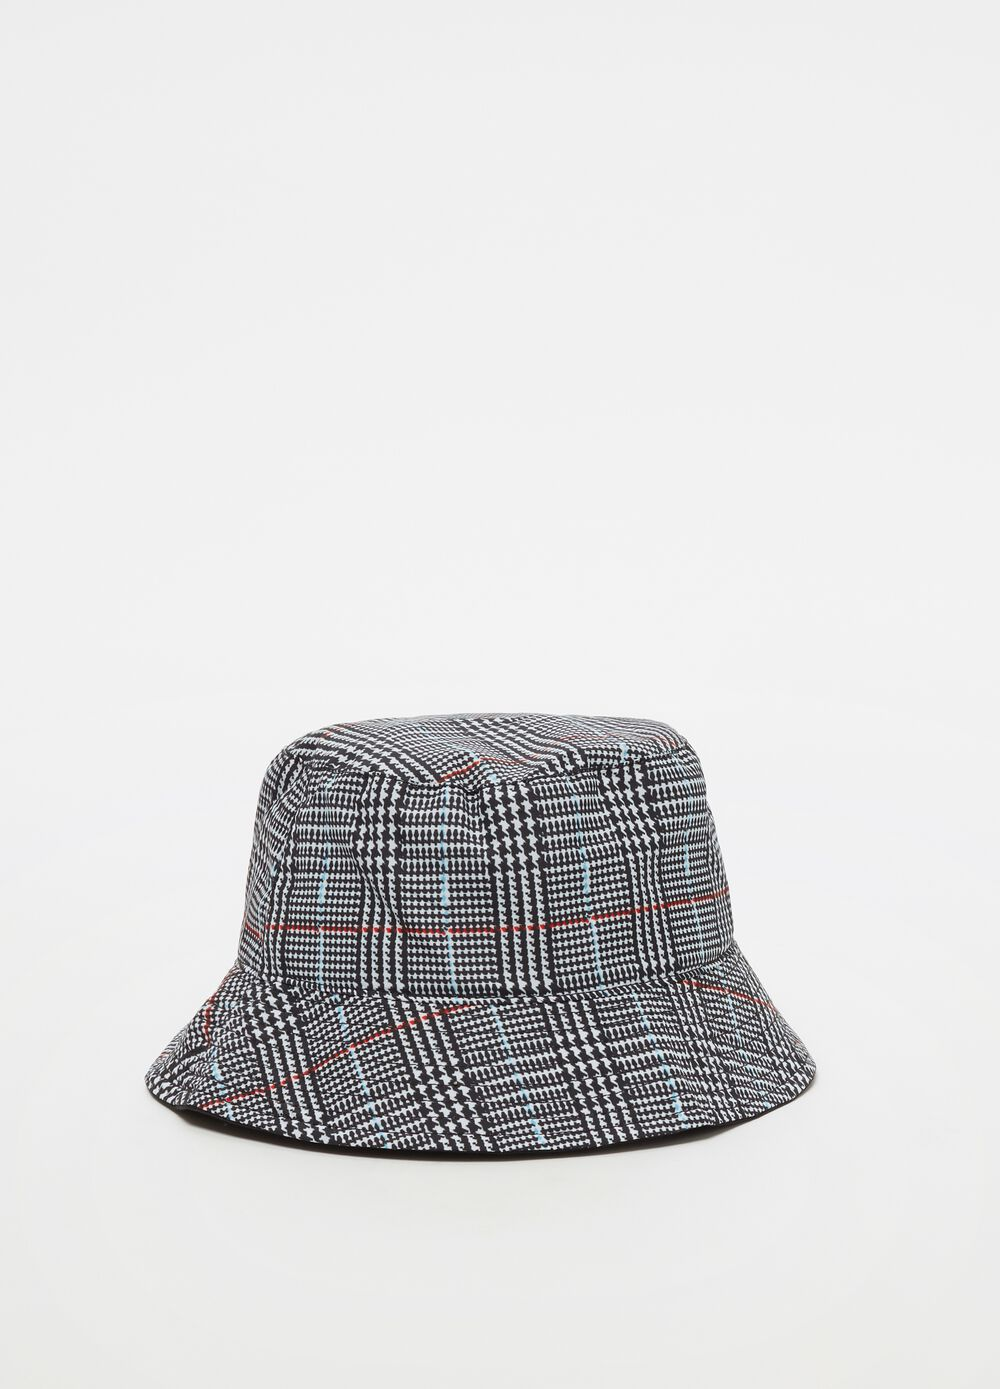 Rain hat with heritage check pattern